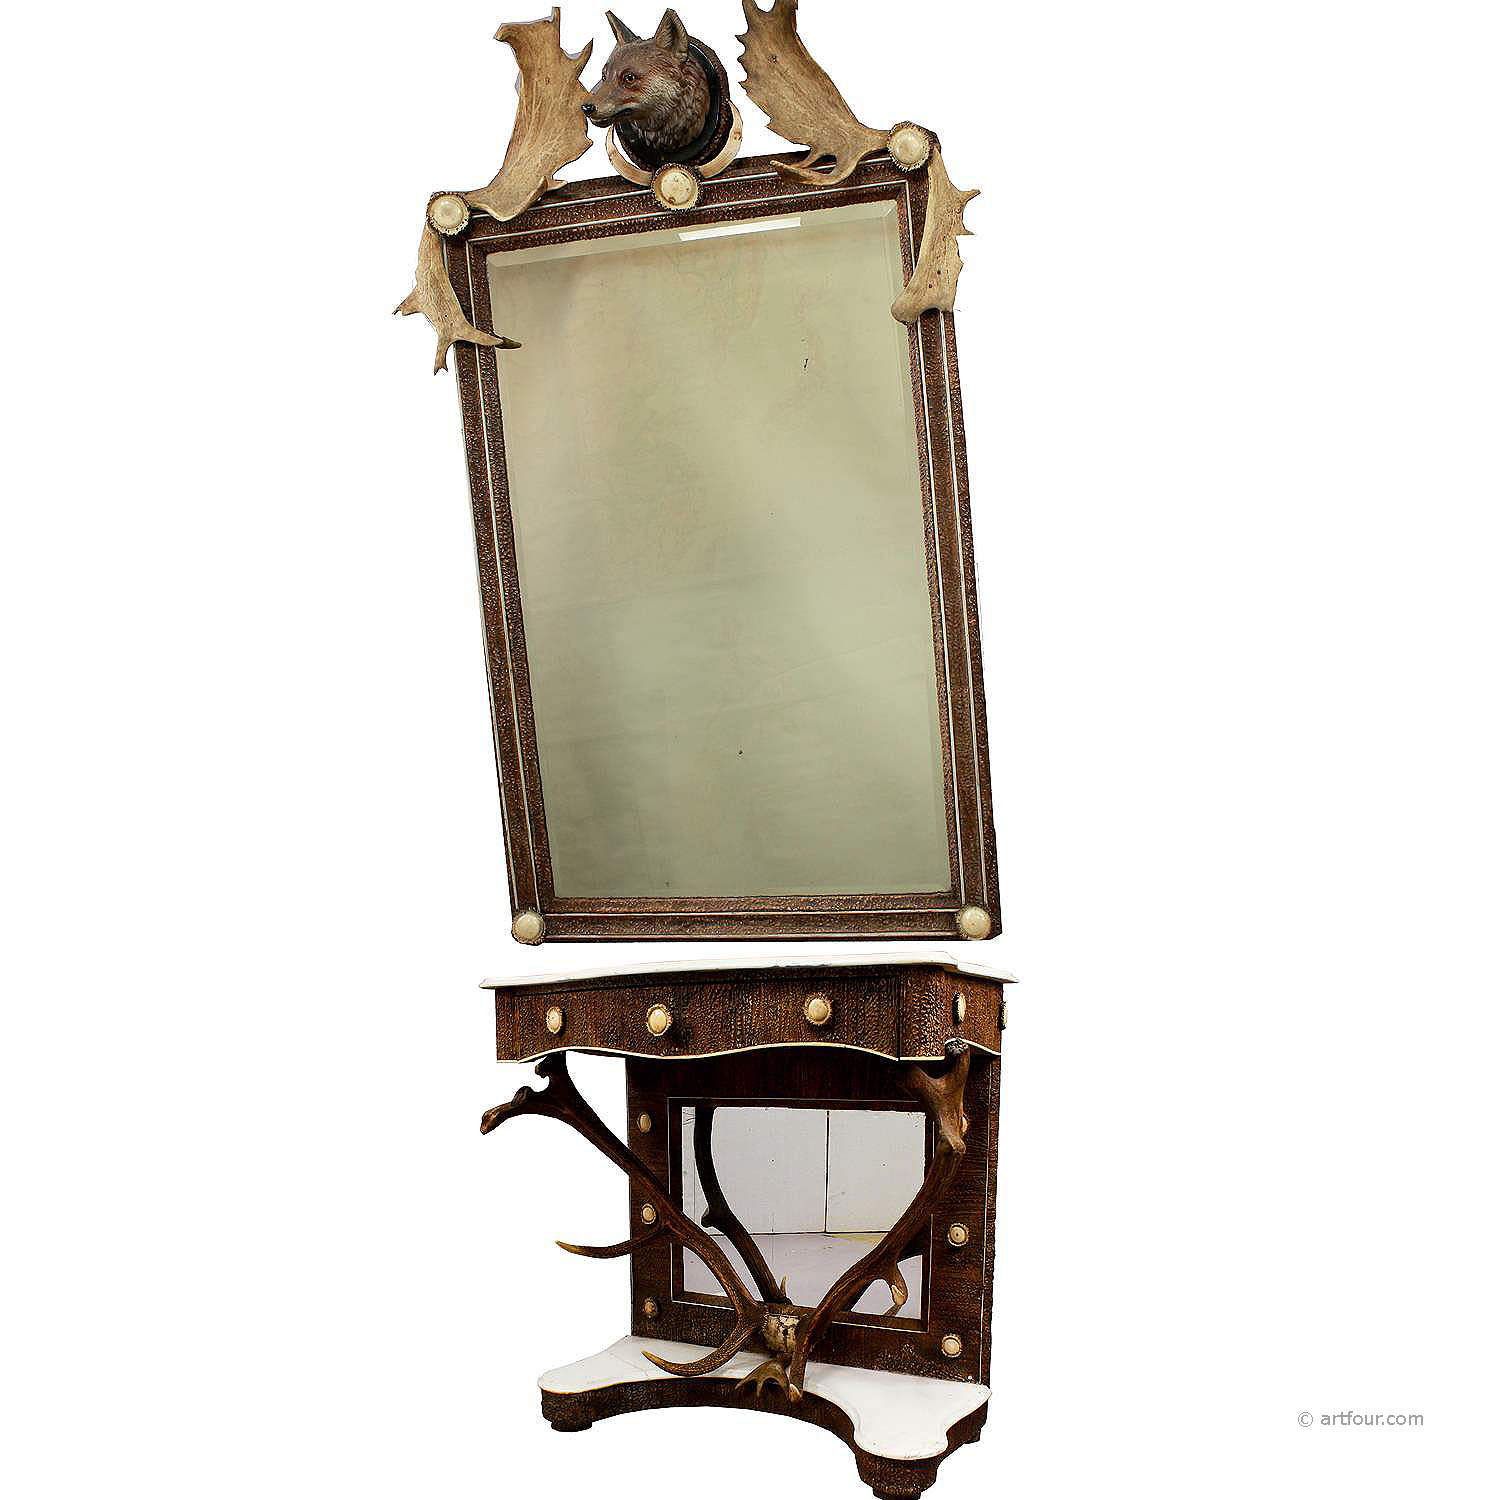 antique antler mirror with console table, austria, ca. 1860